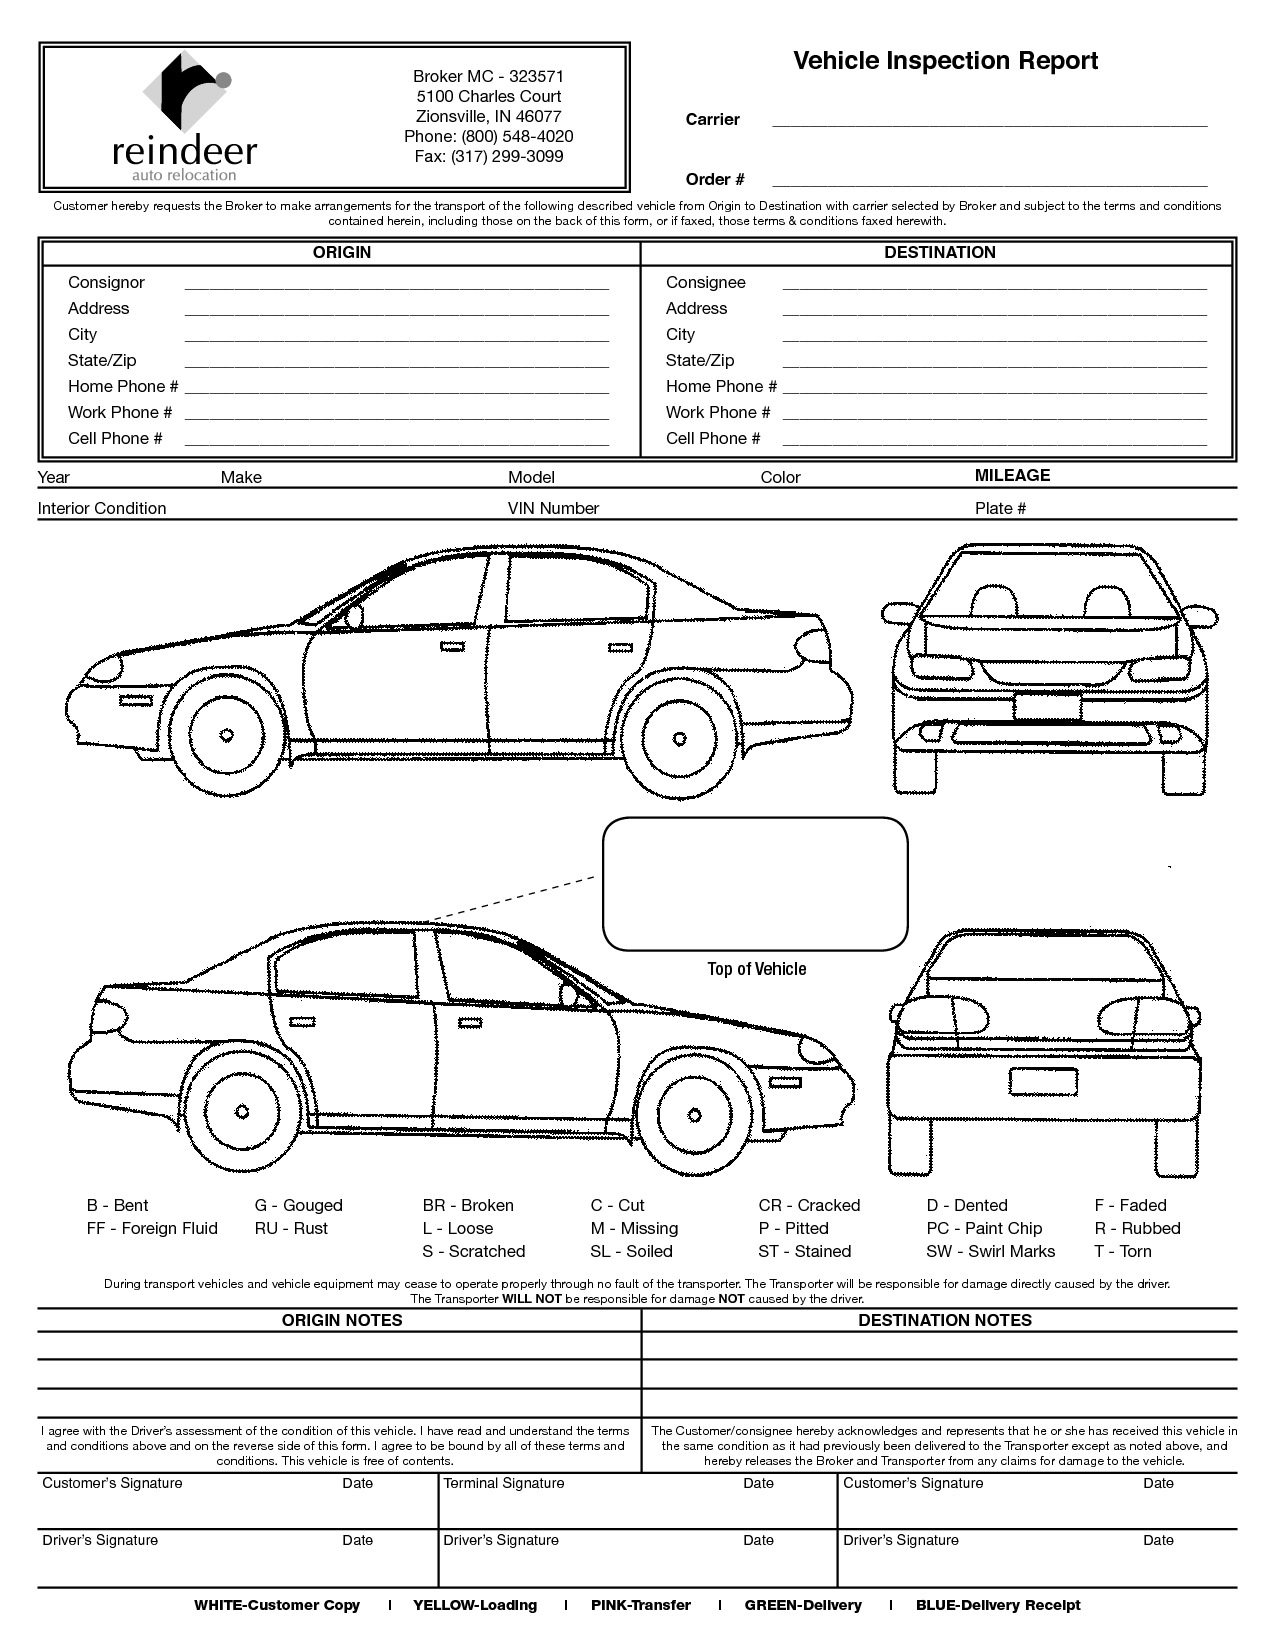 Vehicle Inspection Form Template | Rota Template - Free Printable Vehicle Inspection Form